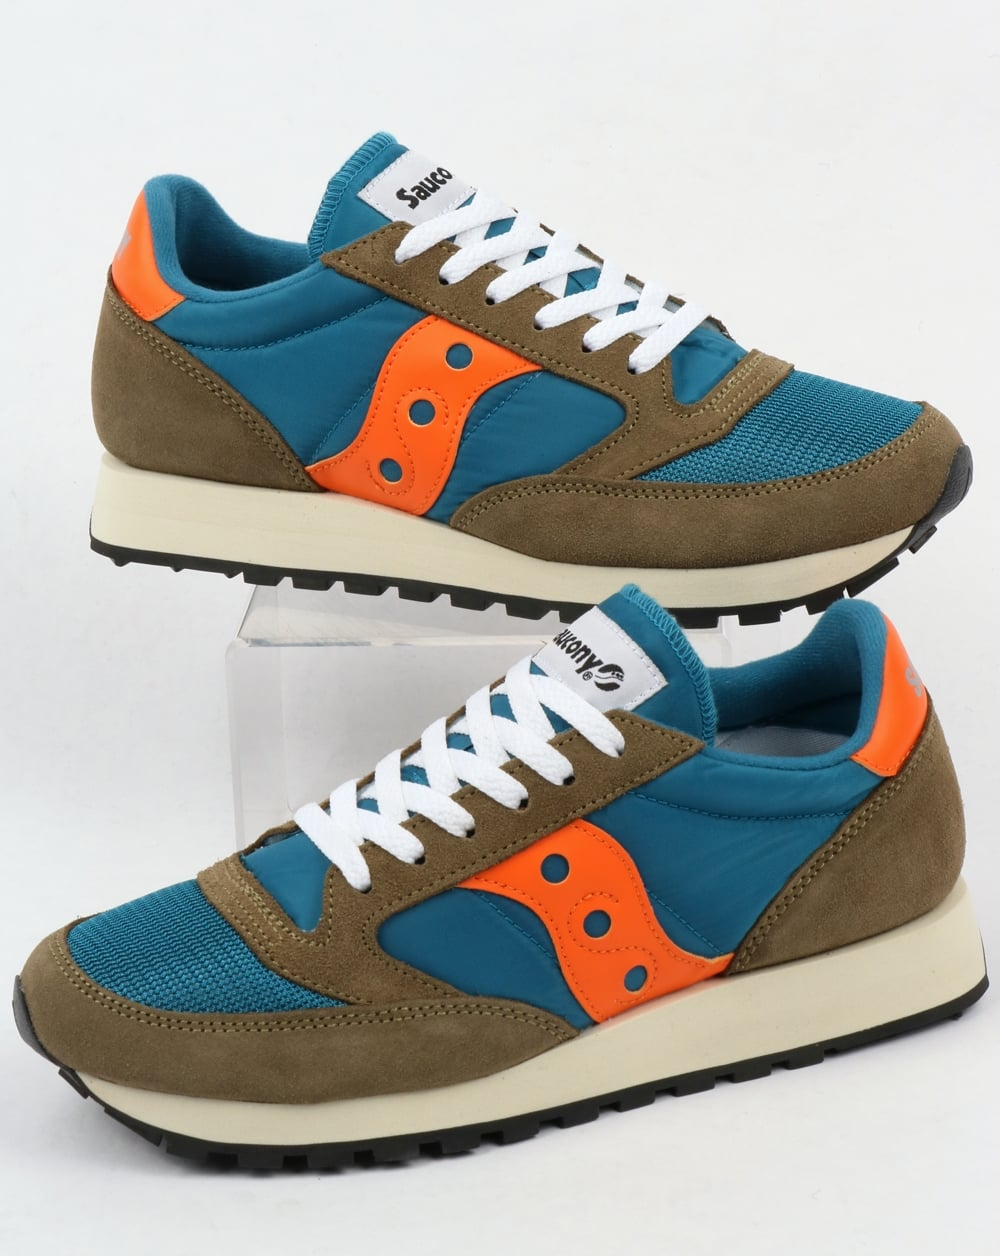 new style ac8cd 6e83b Saucony Jazz Original Vintage Trainers Teal/Olive